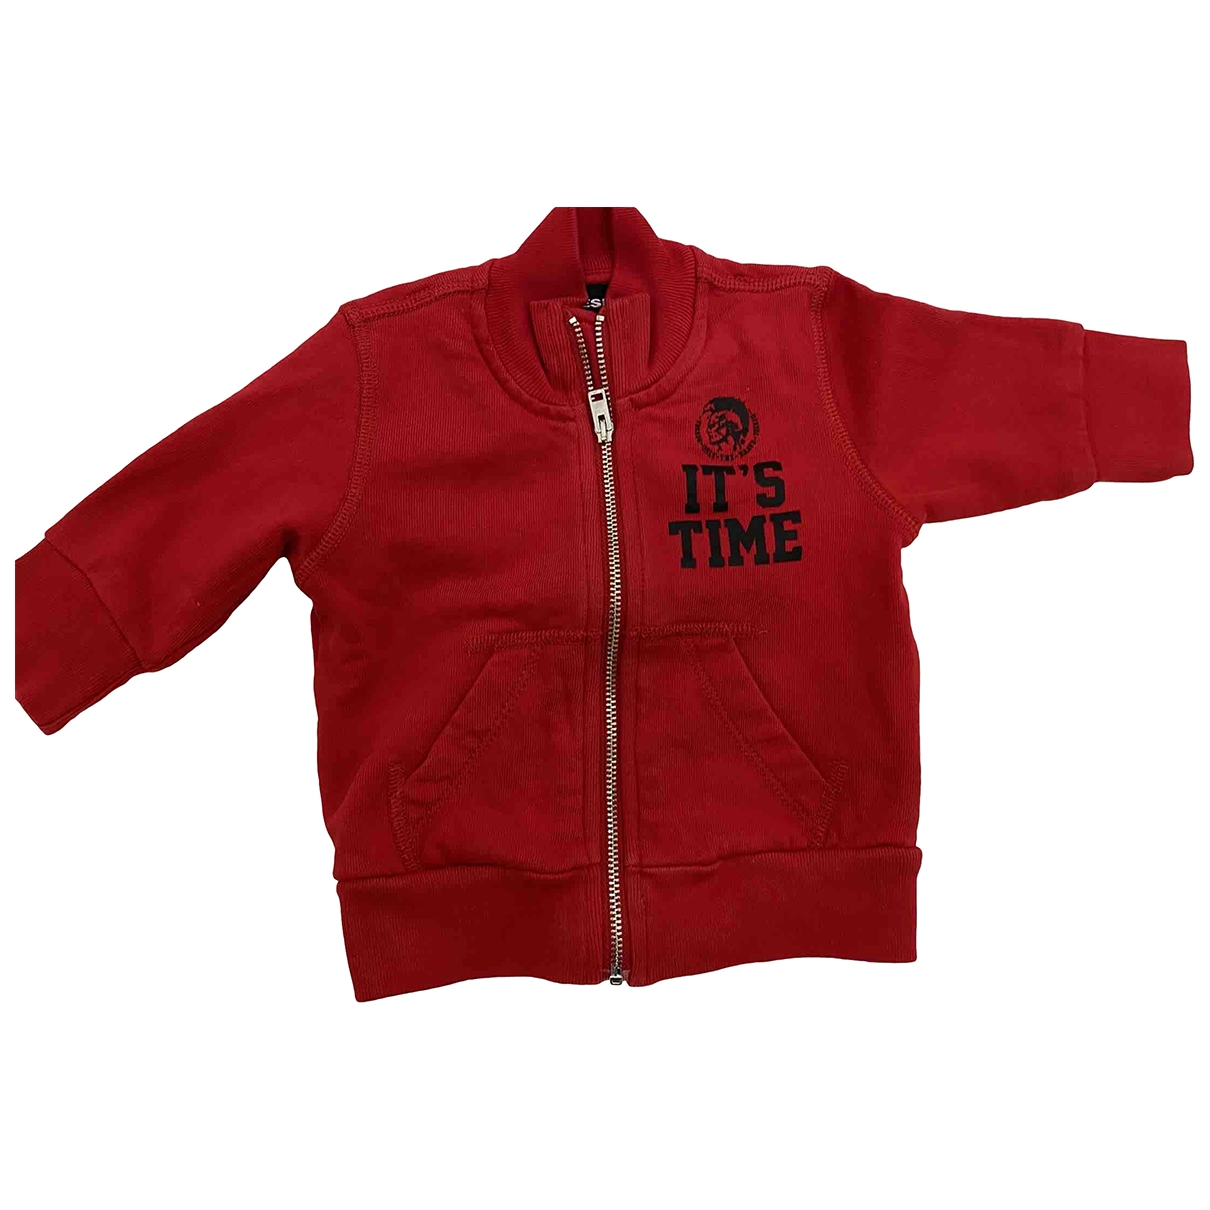 Diesel \N Red Cotton Knitwear for Kids 3 months - until 24 inches UK